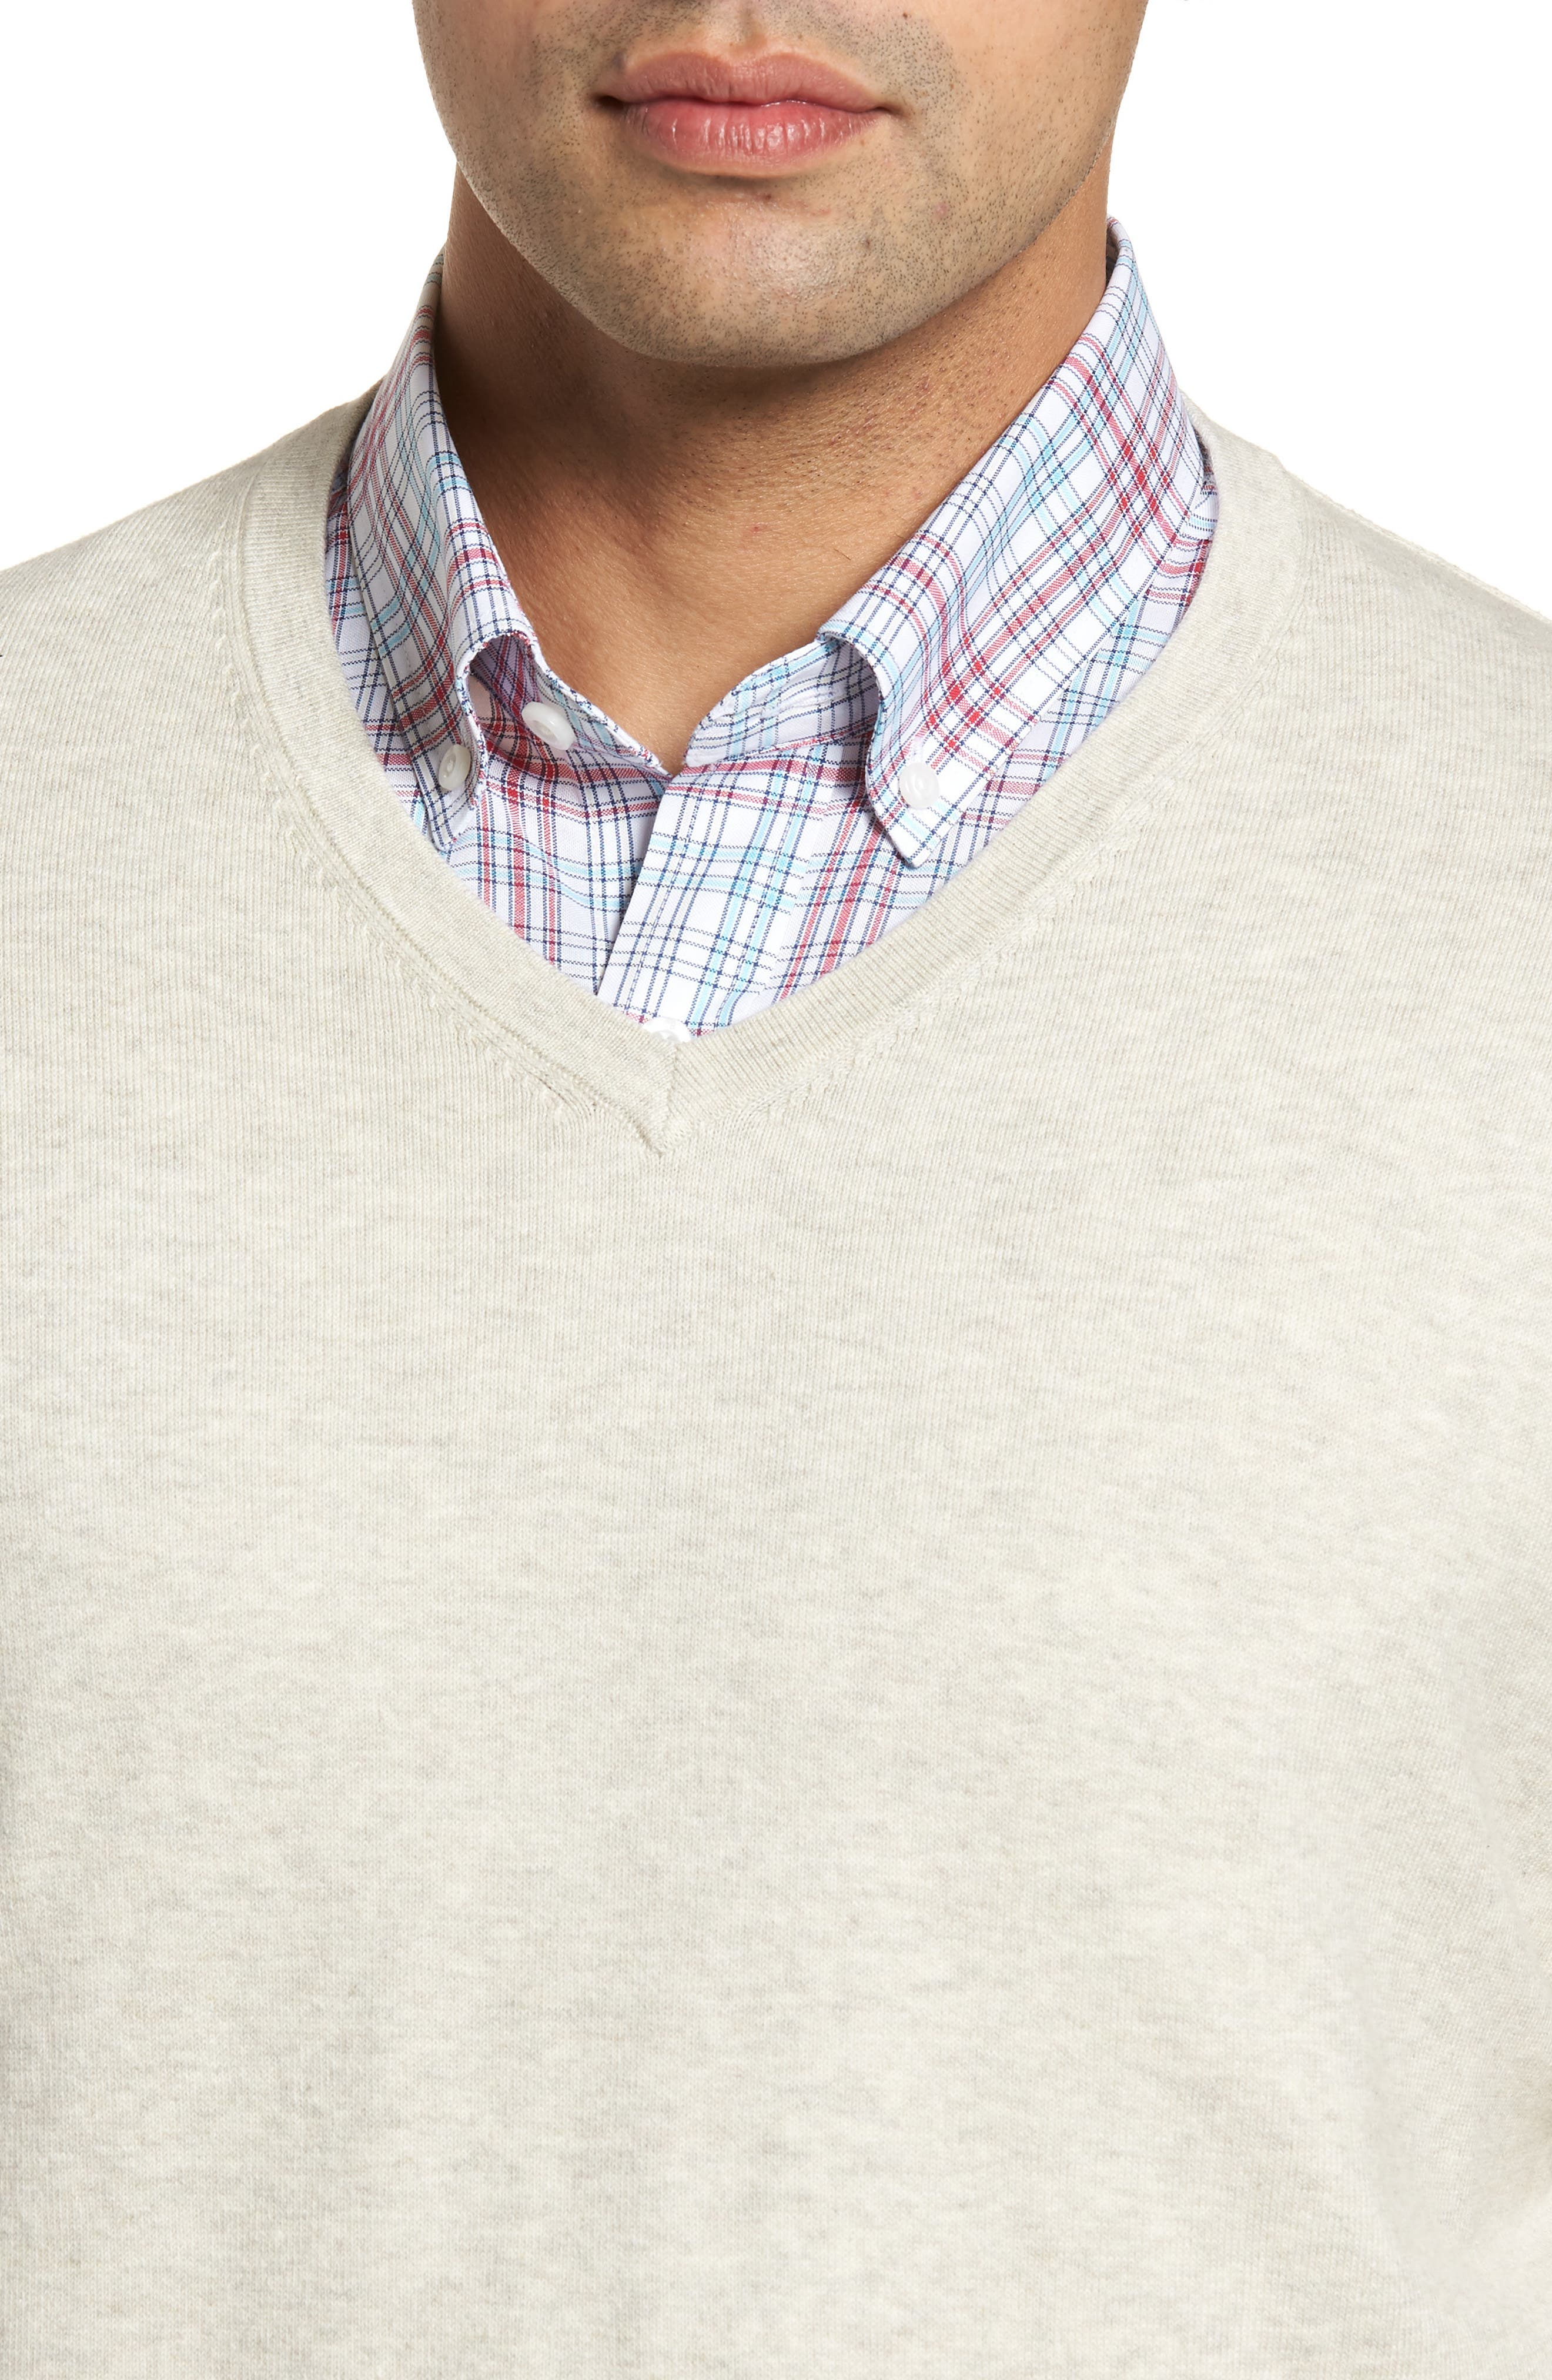 CUTTER & BUCK, Lakemont Classic Fit V-Neck Sweater, Alternate thumbnail 4, color, OATMEAL HEATHER